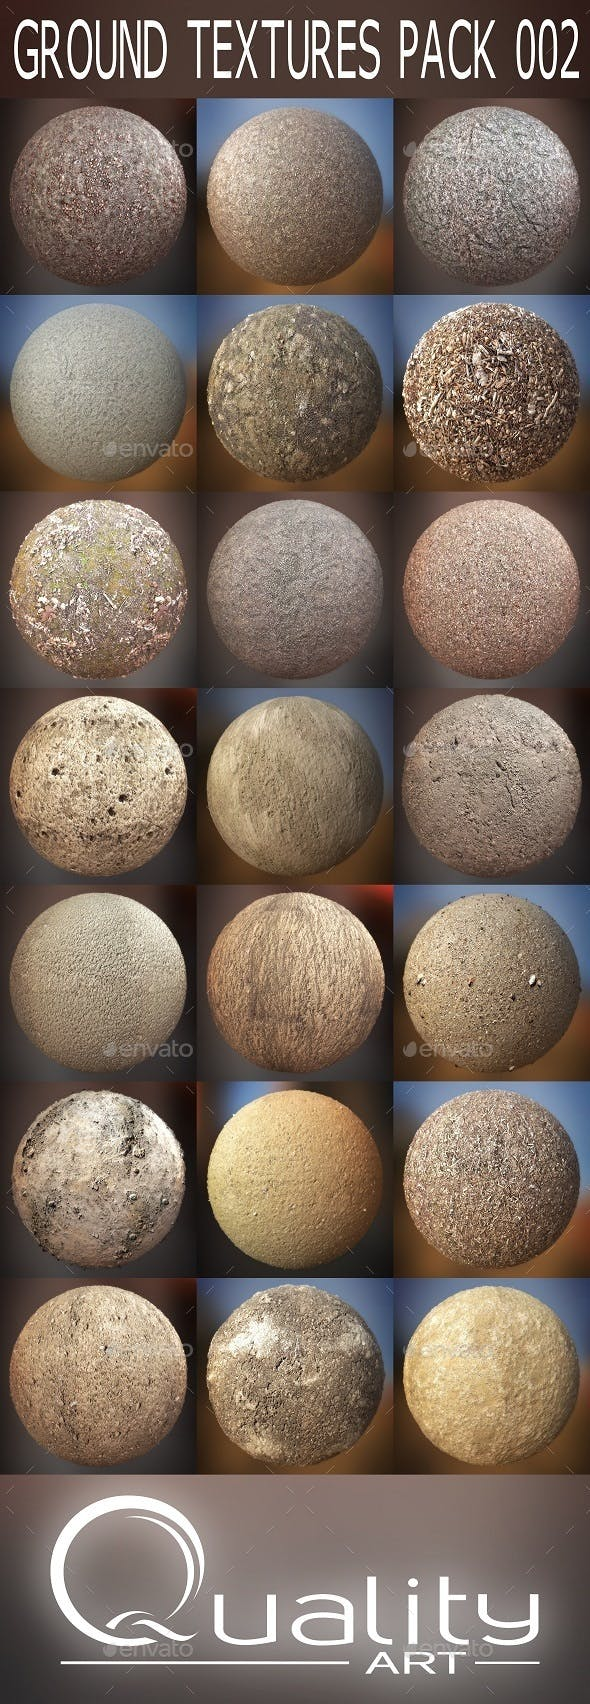 Ground Textures Pack 002 - 3DOcean Item for Sale